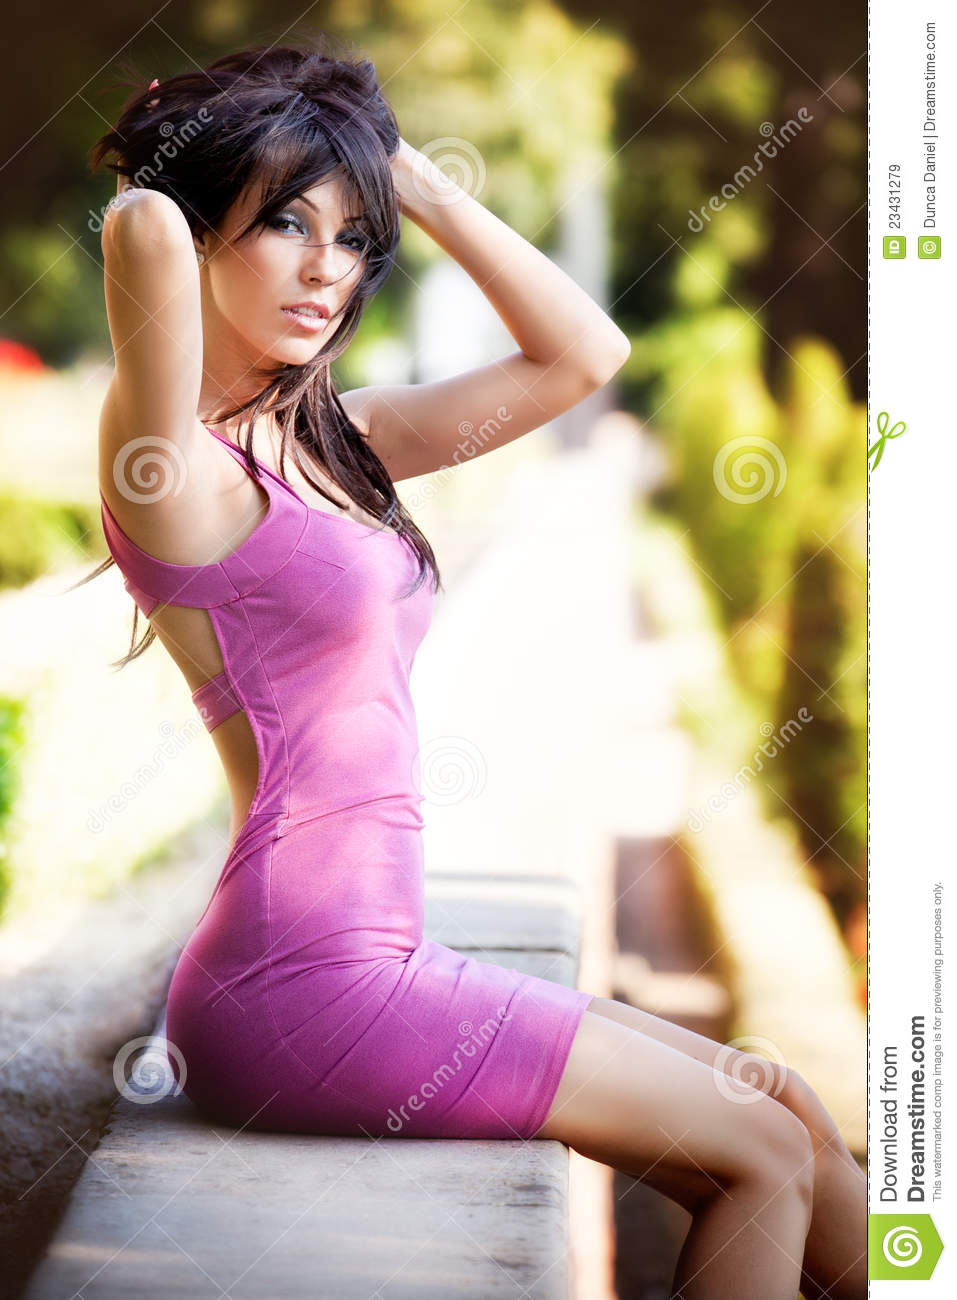 ... Woman With Sexy Body Royalty Free Stock Images - Image: 23431279